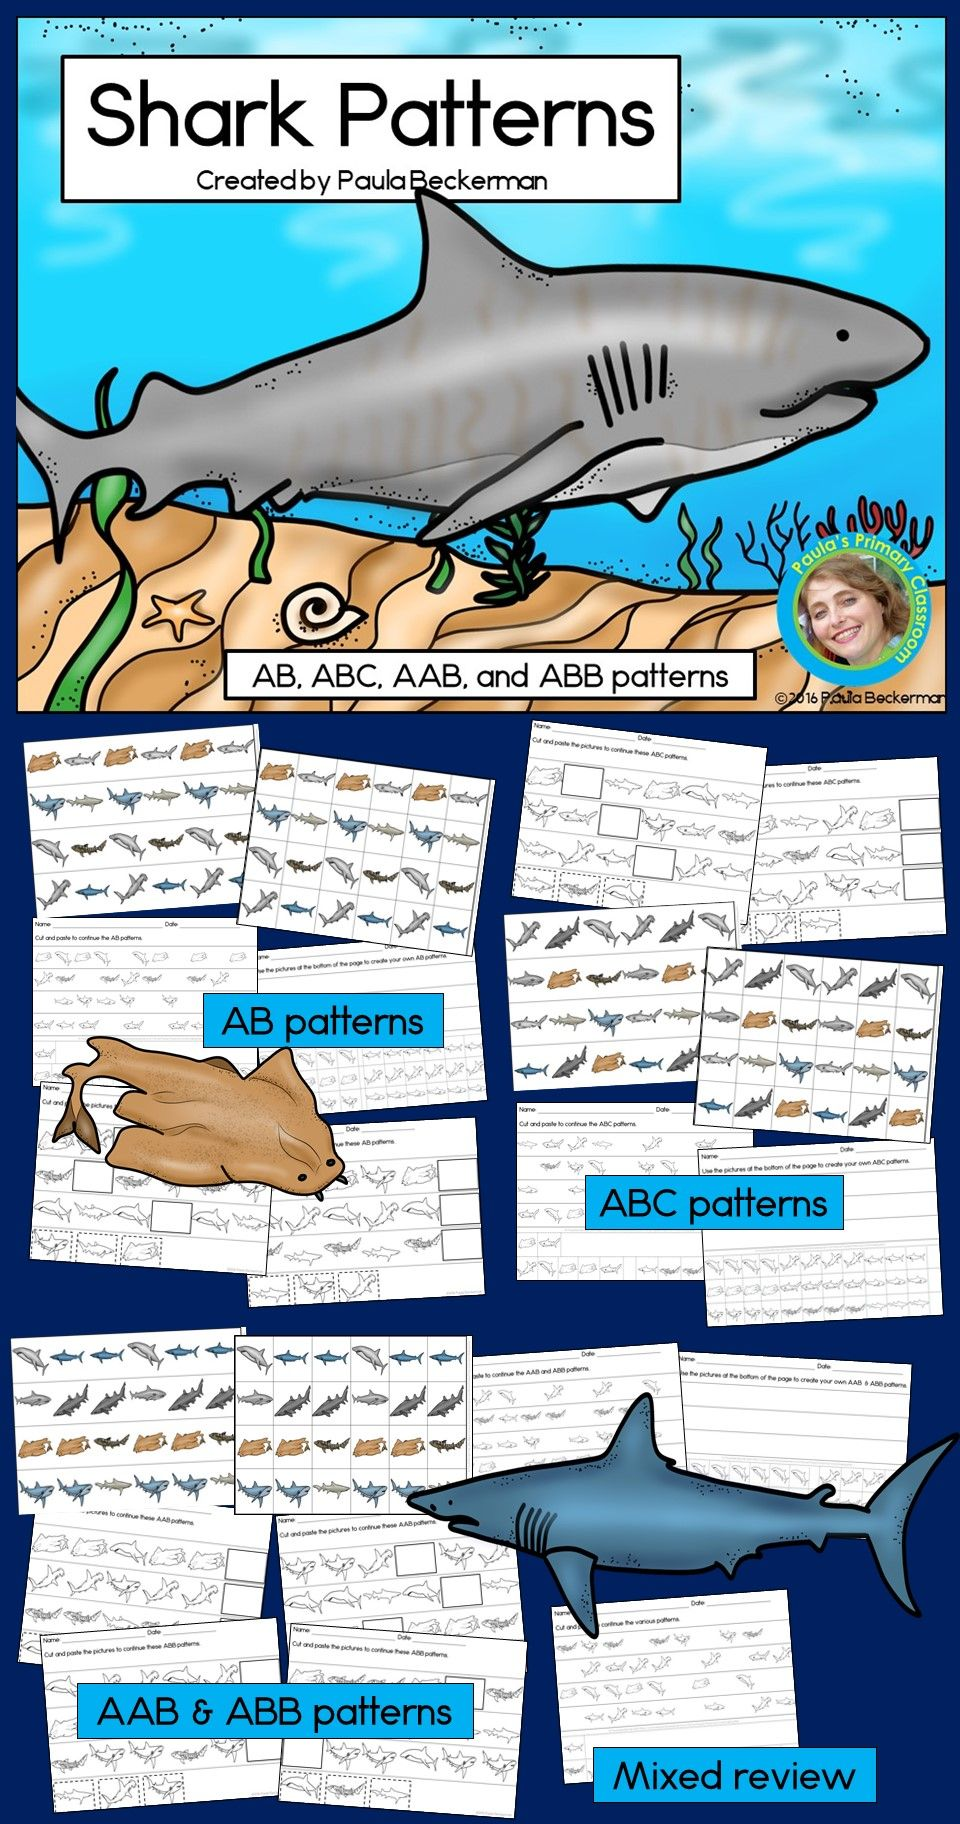 Students Love This Hands On Shark Themed Math Activity There Are 12 Pattern Strips To Extend Ab Abc Aab Abb Patte Abb Patterns Math Center Shark Pattern [ 1824 x 960 Pixel ]